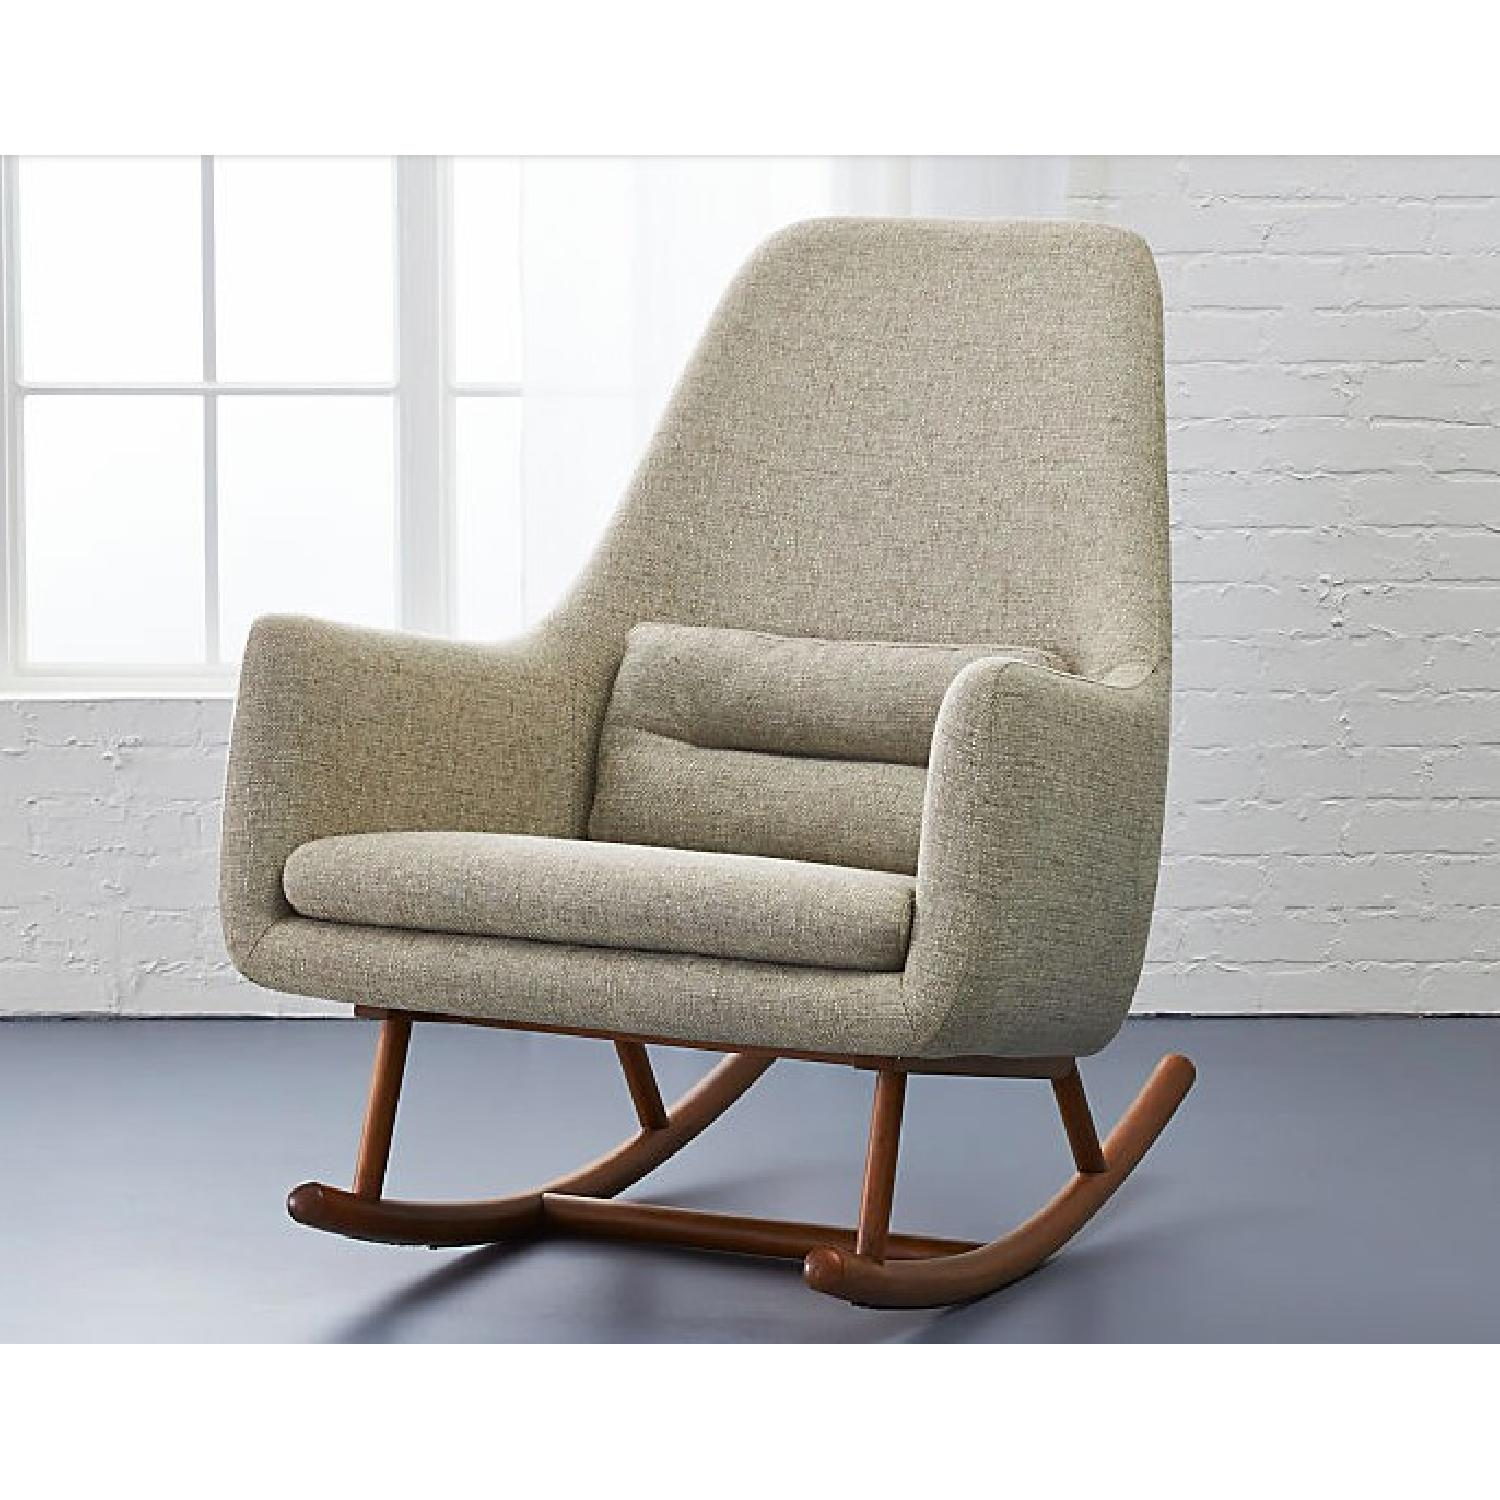 CB2 Saic Quantam Rocking Chair - image-3